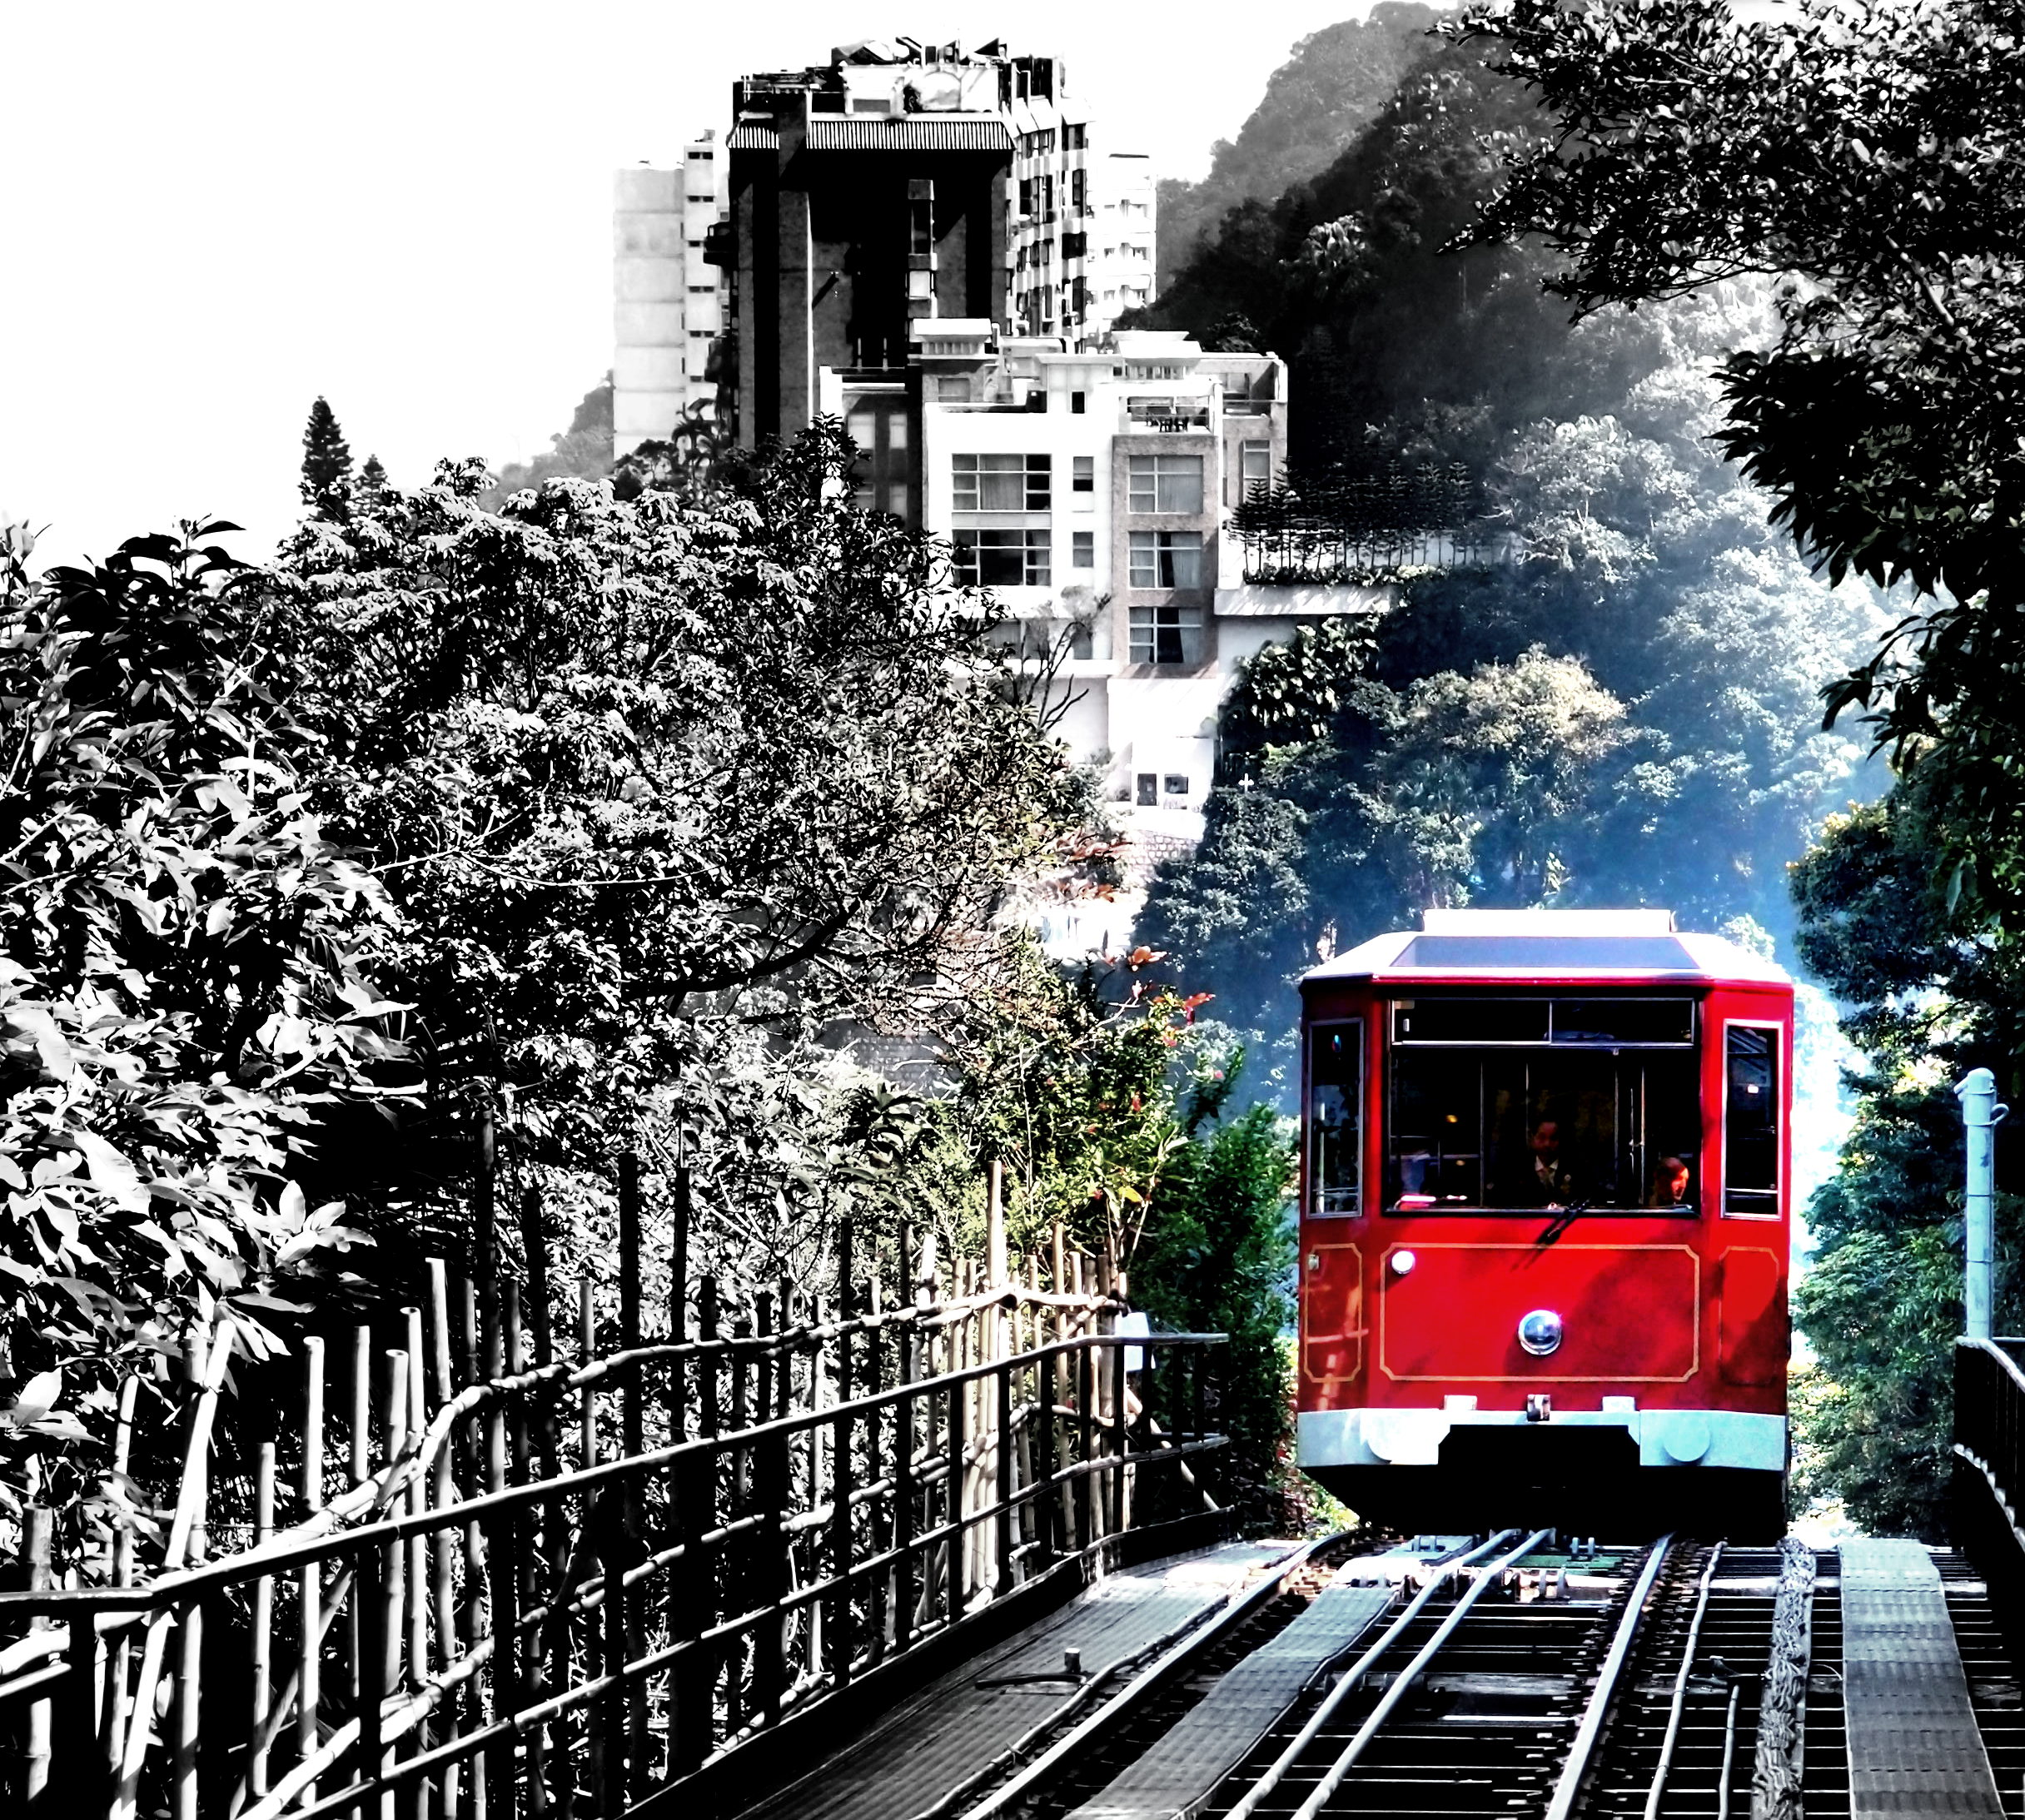 The iconic Peak Tram cresting the hill approaching the Peak Tram Station at the Peak